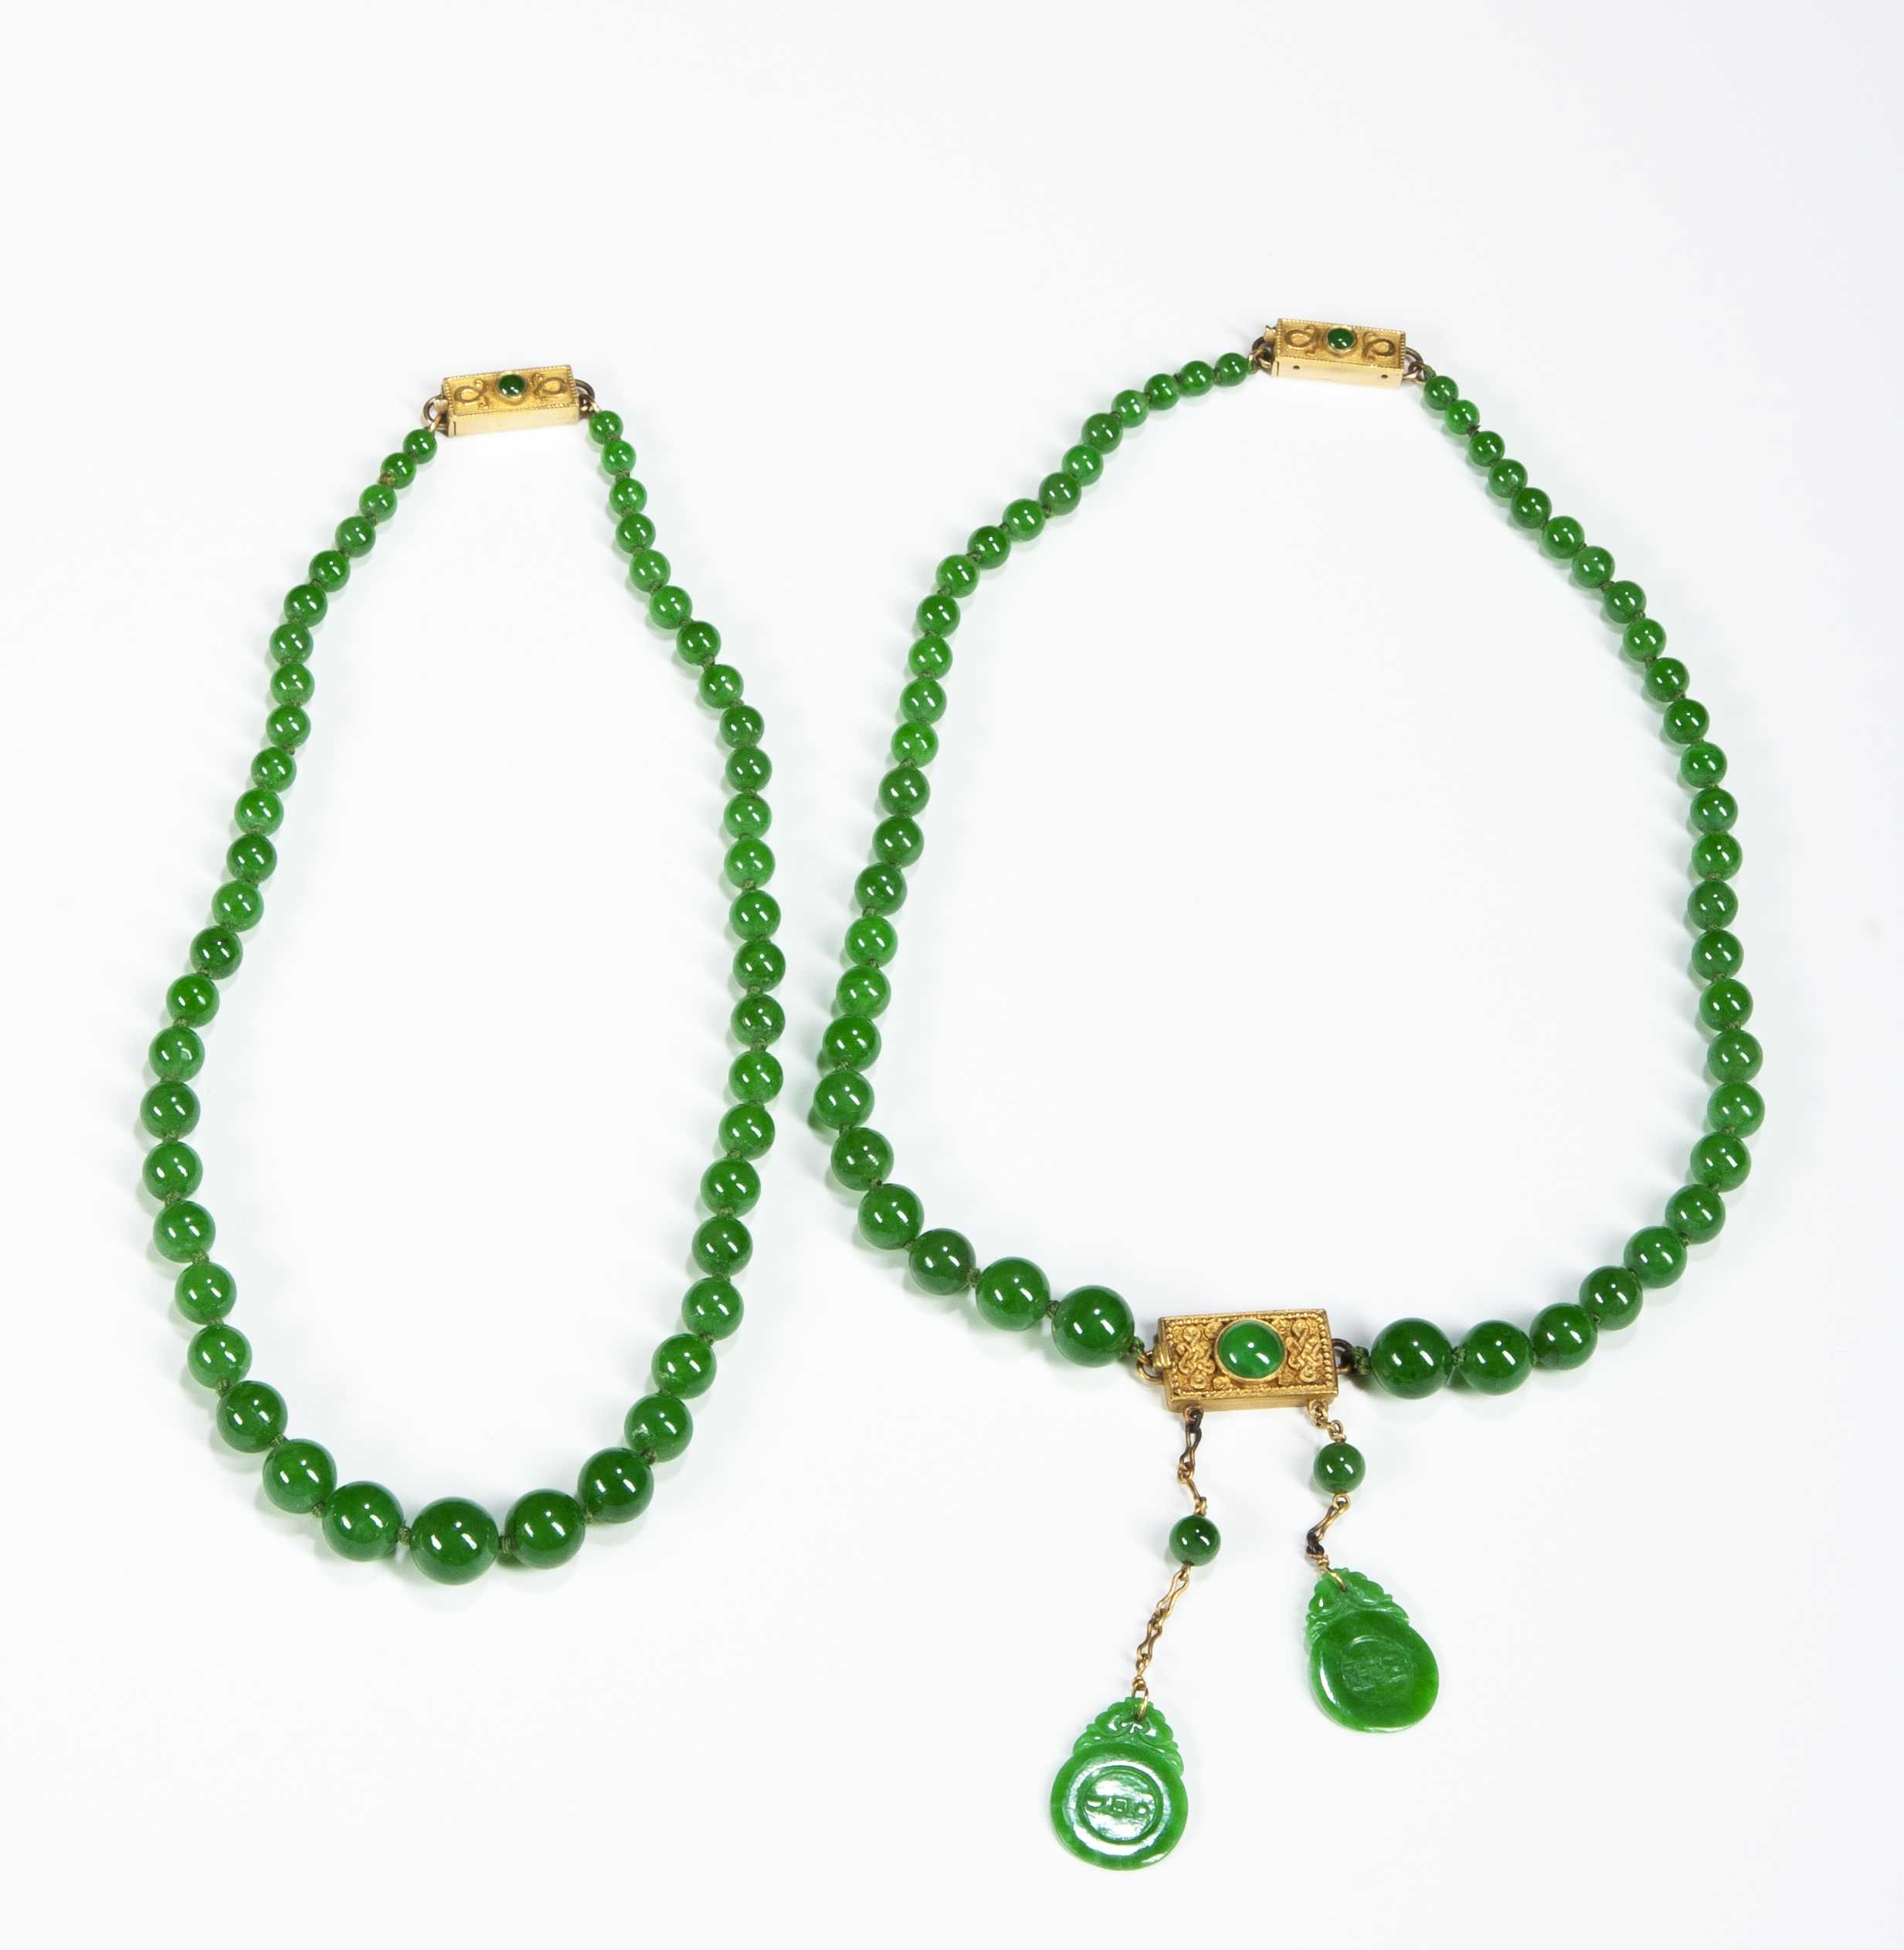 necklace jewelry of fish the meaning representation chinese export myshoplah jade